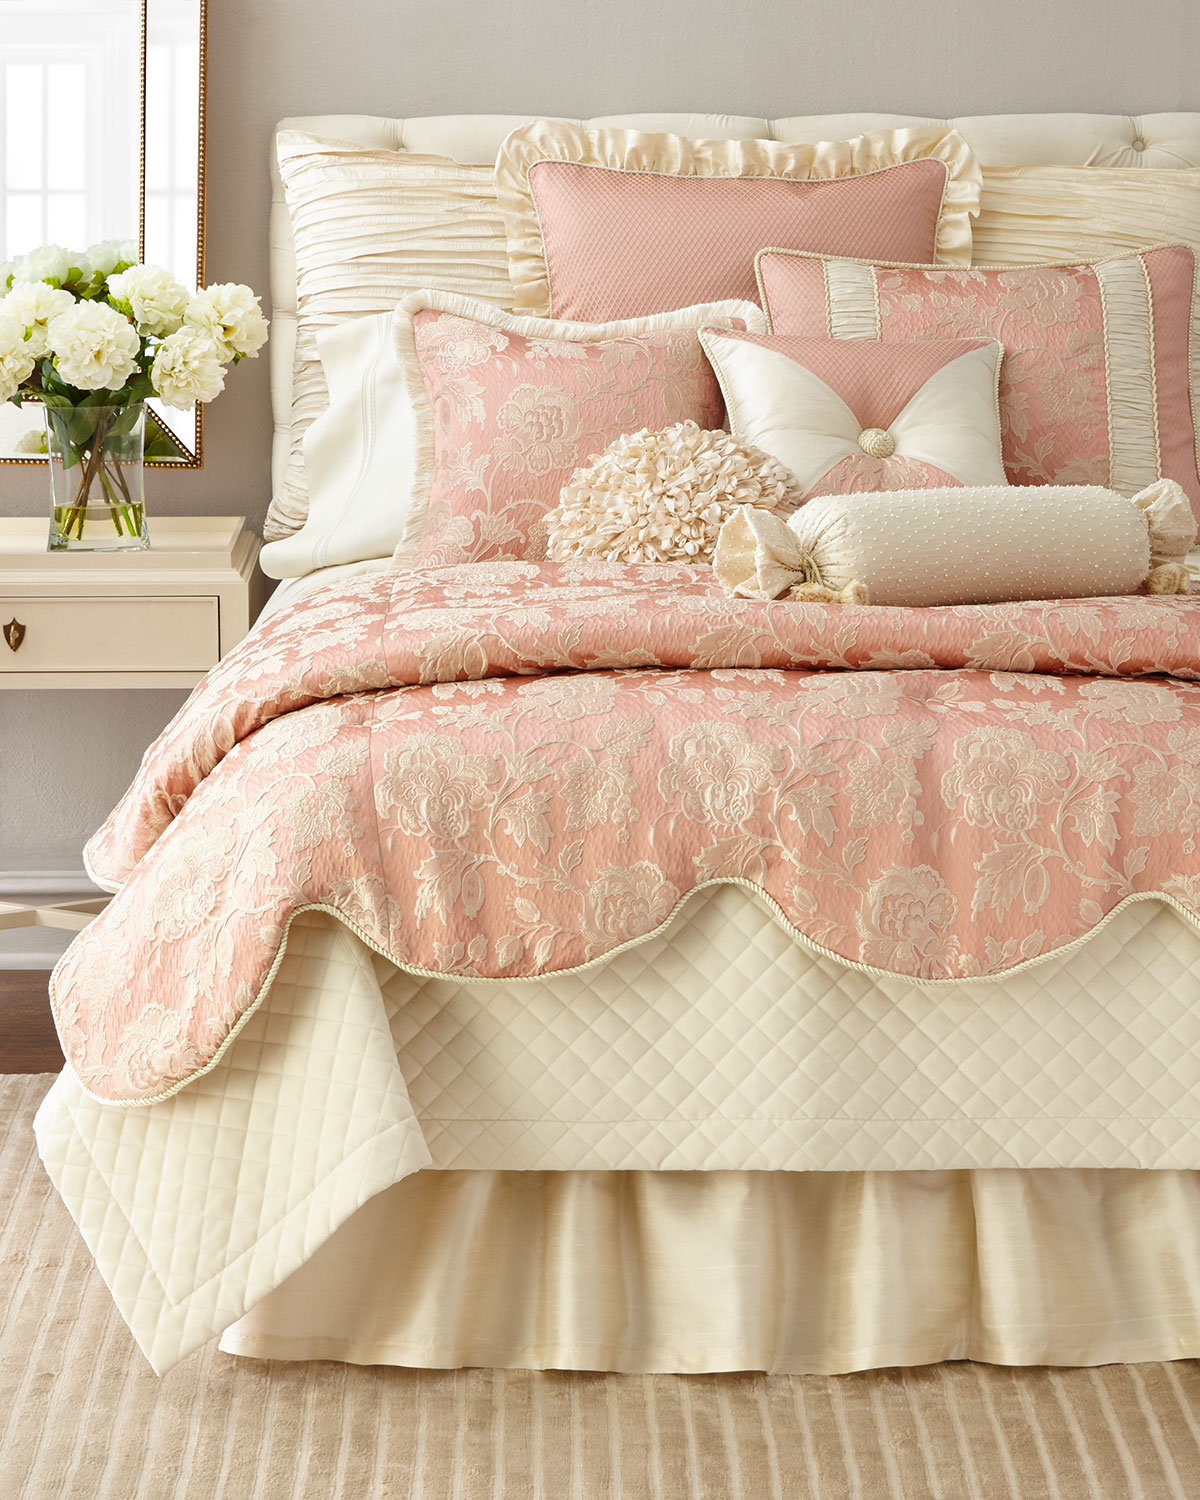 Pink Accents for The Year of the Pig: Lucky Colors and Good Feng Shui for the New Year